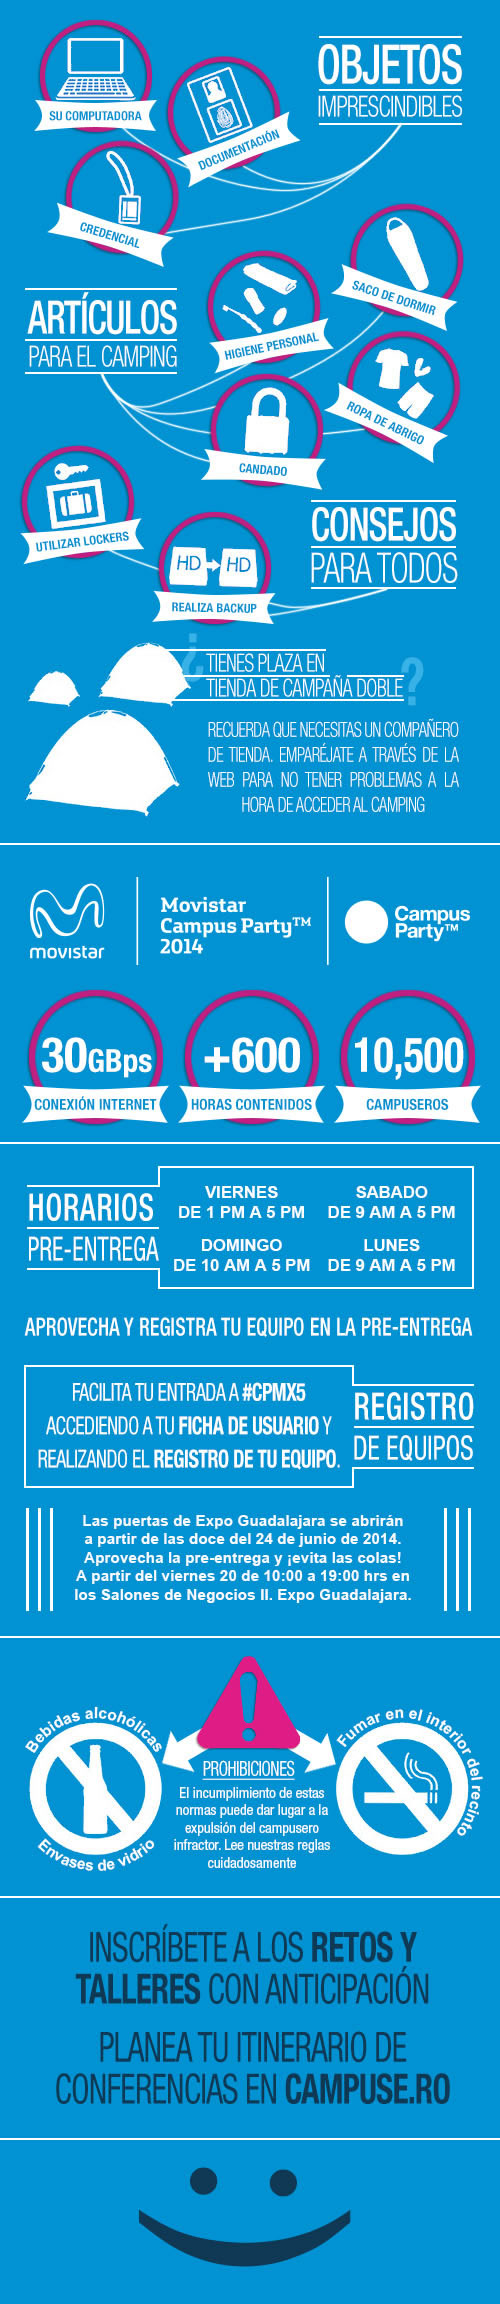 guia campusera campus party mexico 2014 ¿Vas a Campus Party México 2014? Esto necesitas saber #CPMX5